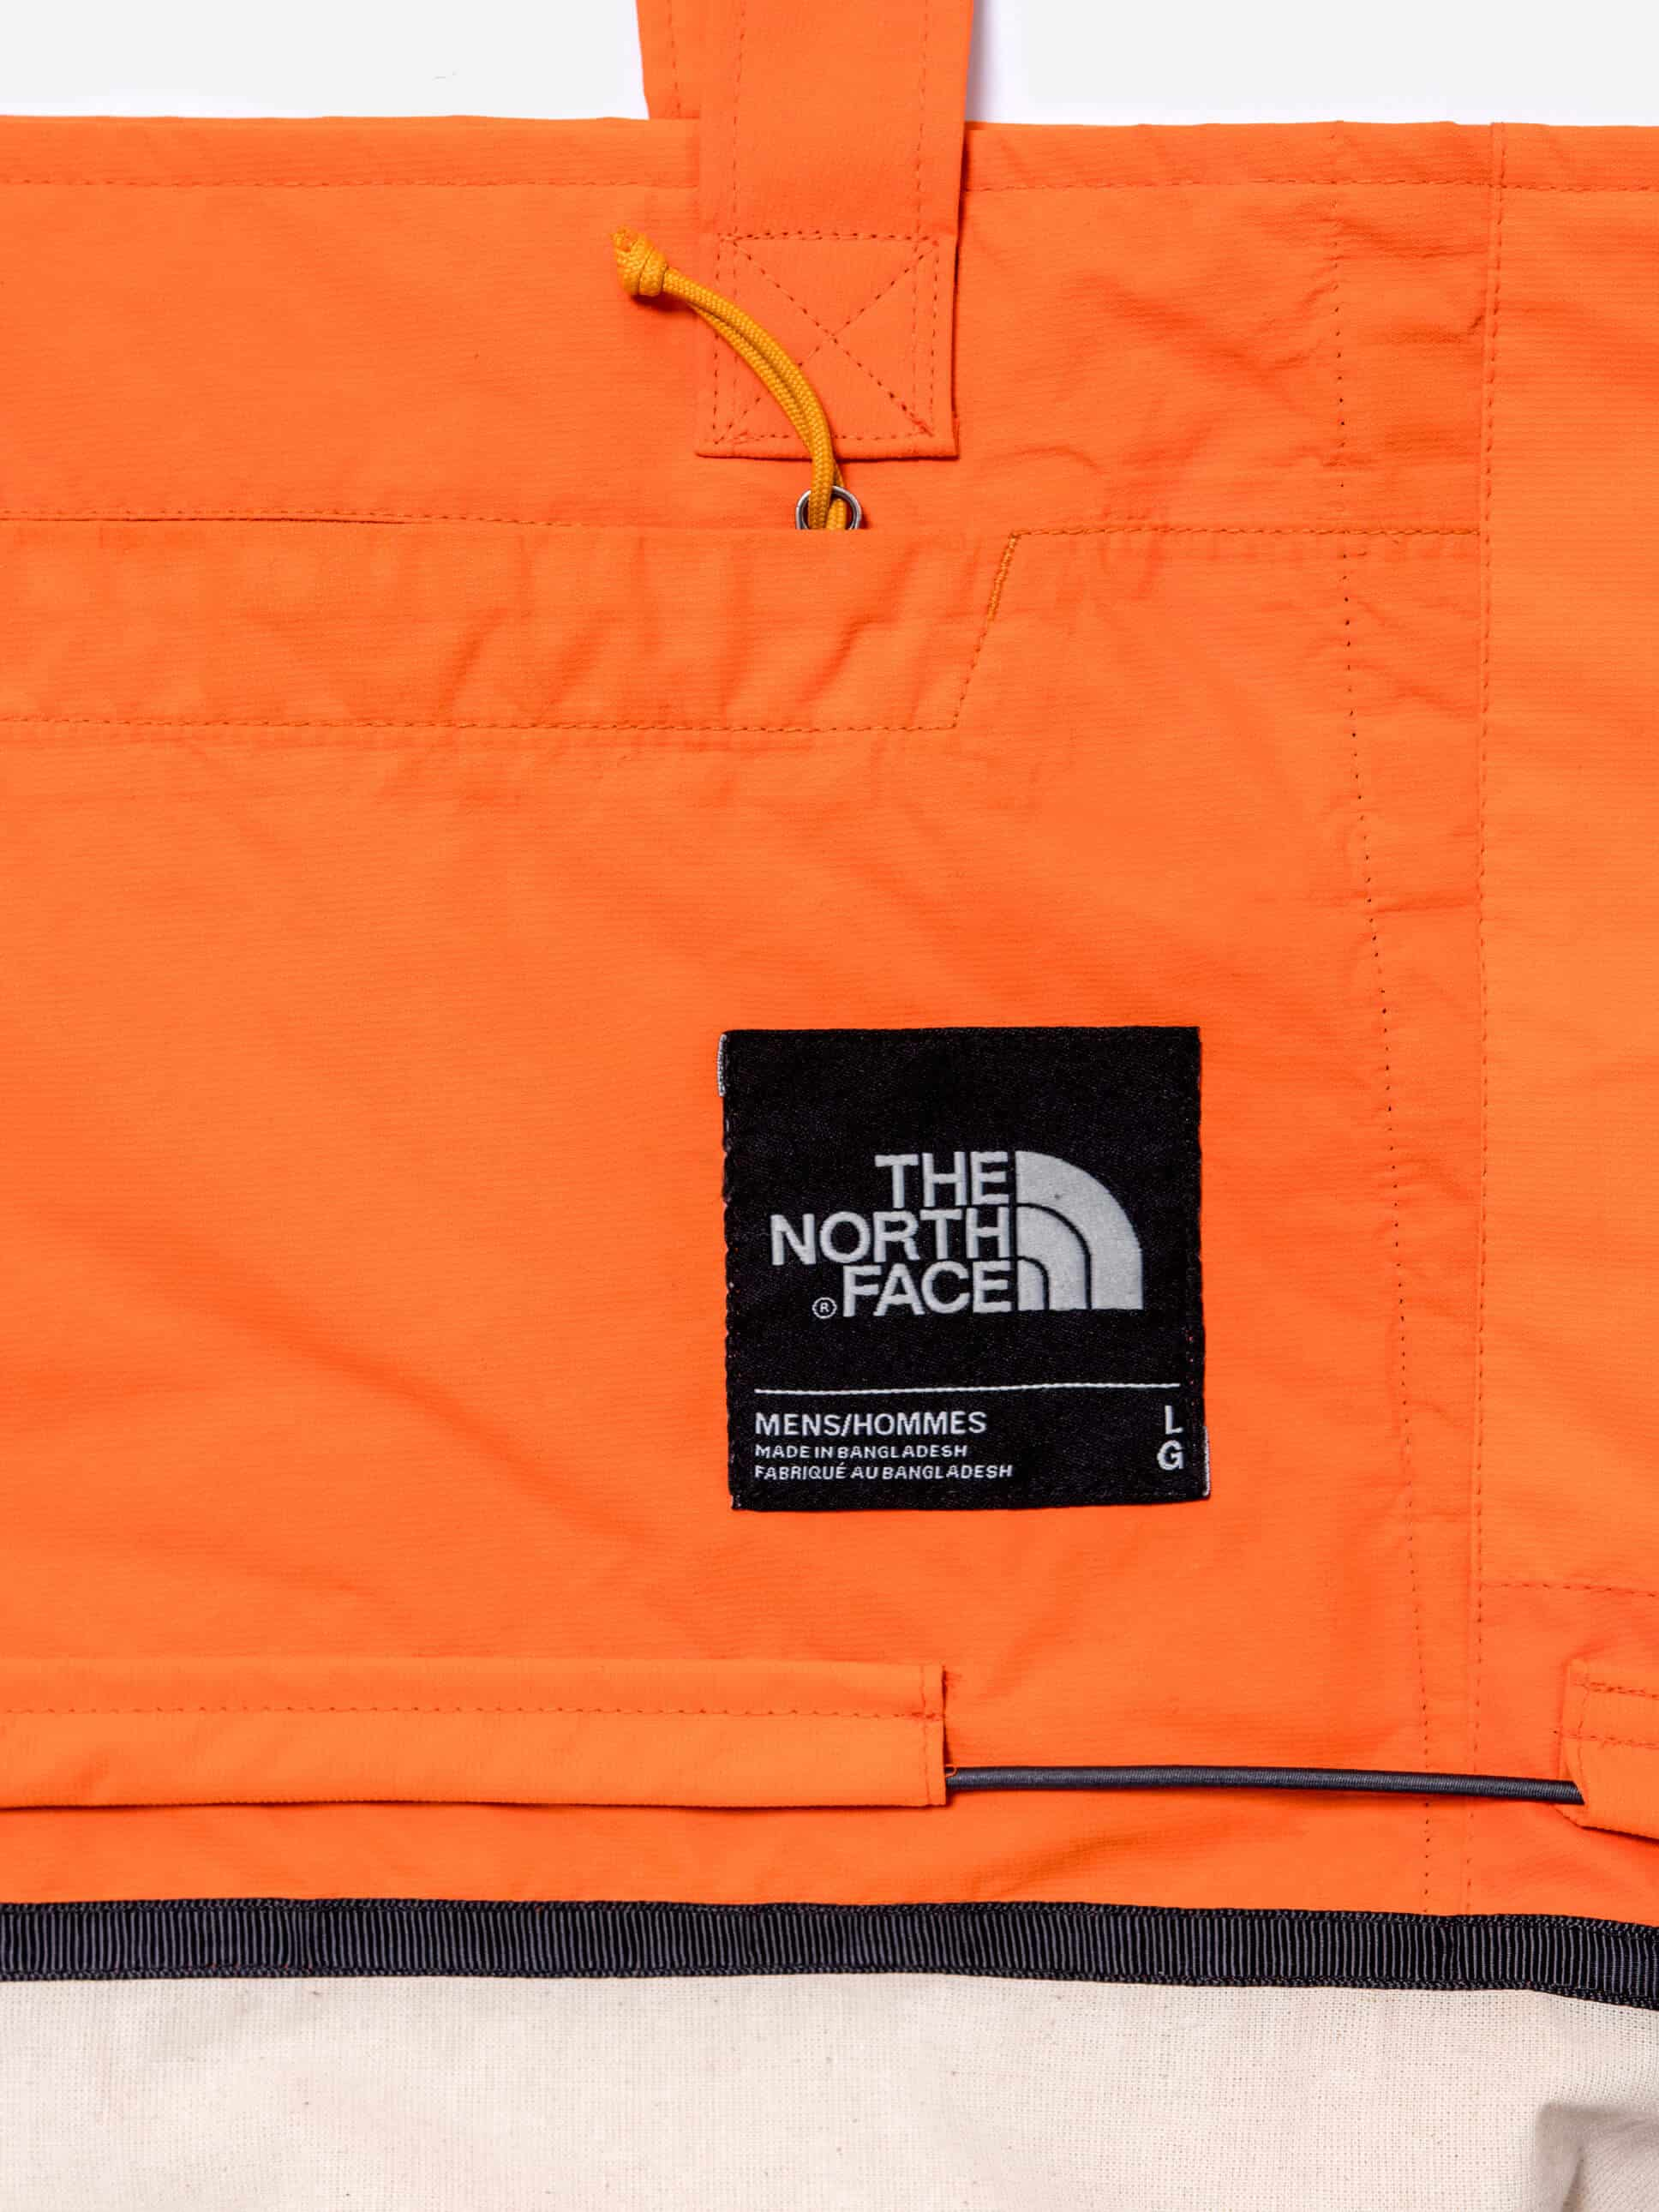 North Face Repurposed Greater_Goods_tote_bag_-56